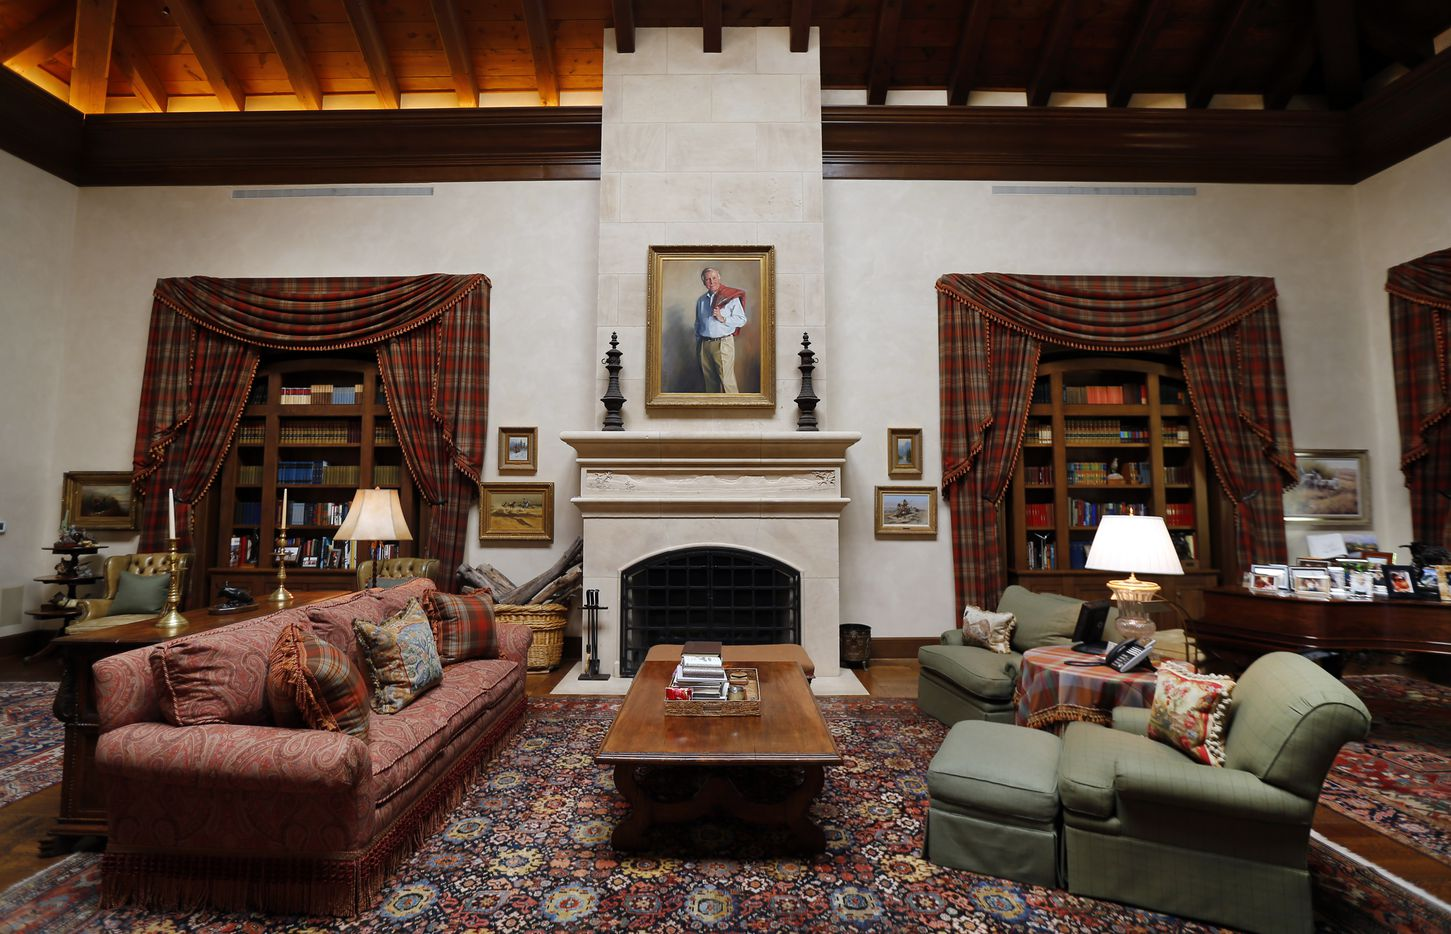 The great room in the lodge has a portrait of businessman T. Boone Pickens hanging above the fireplace.